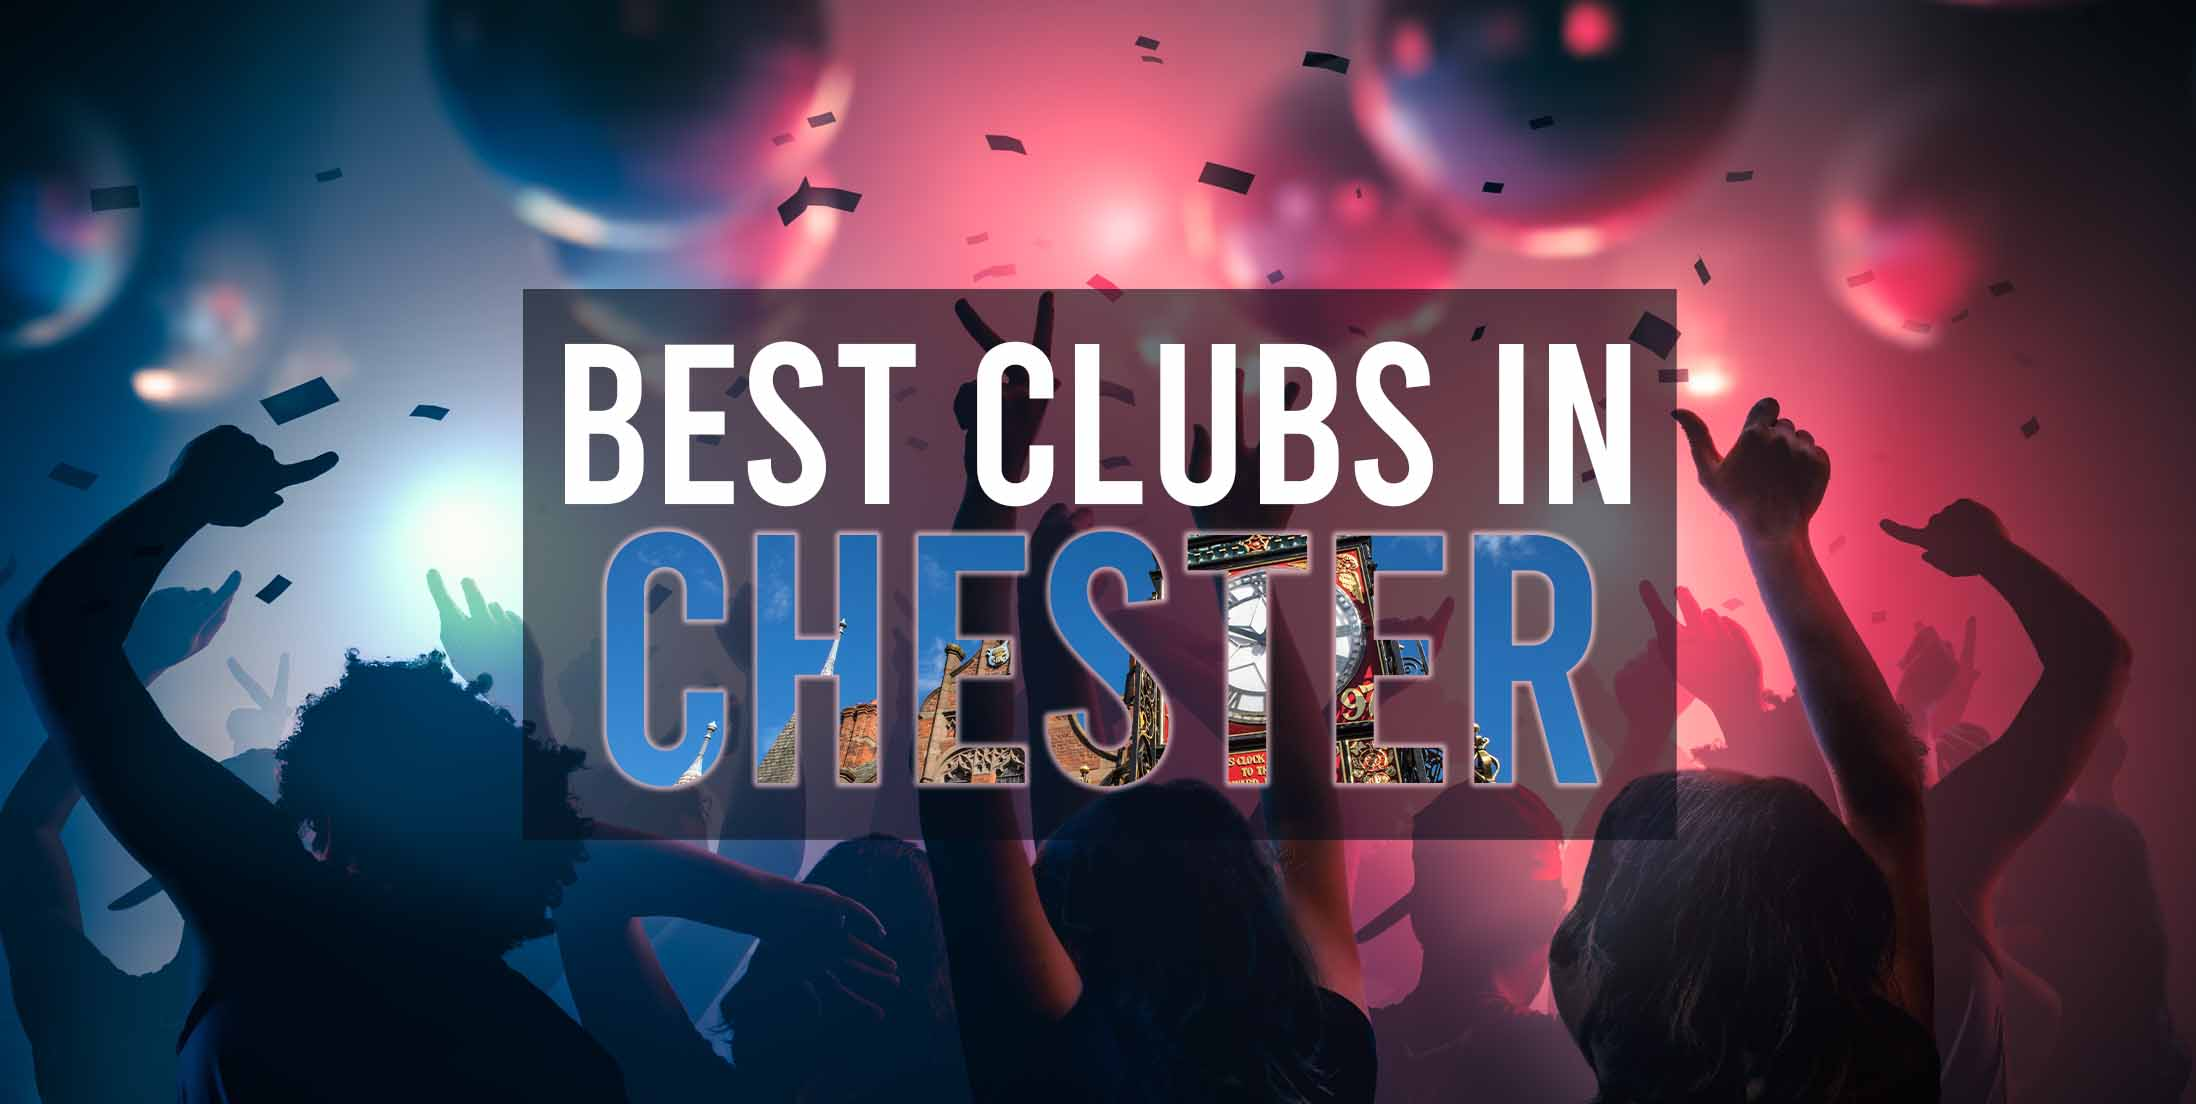 7 Best Clubs in Chester